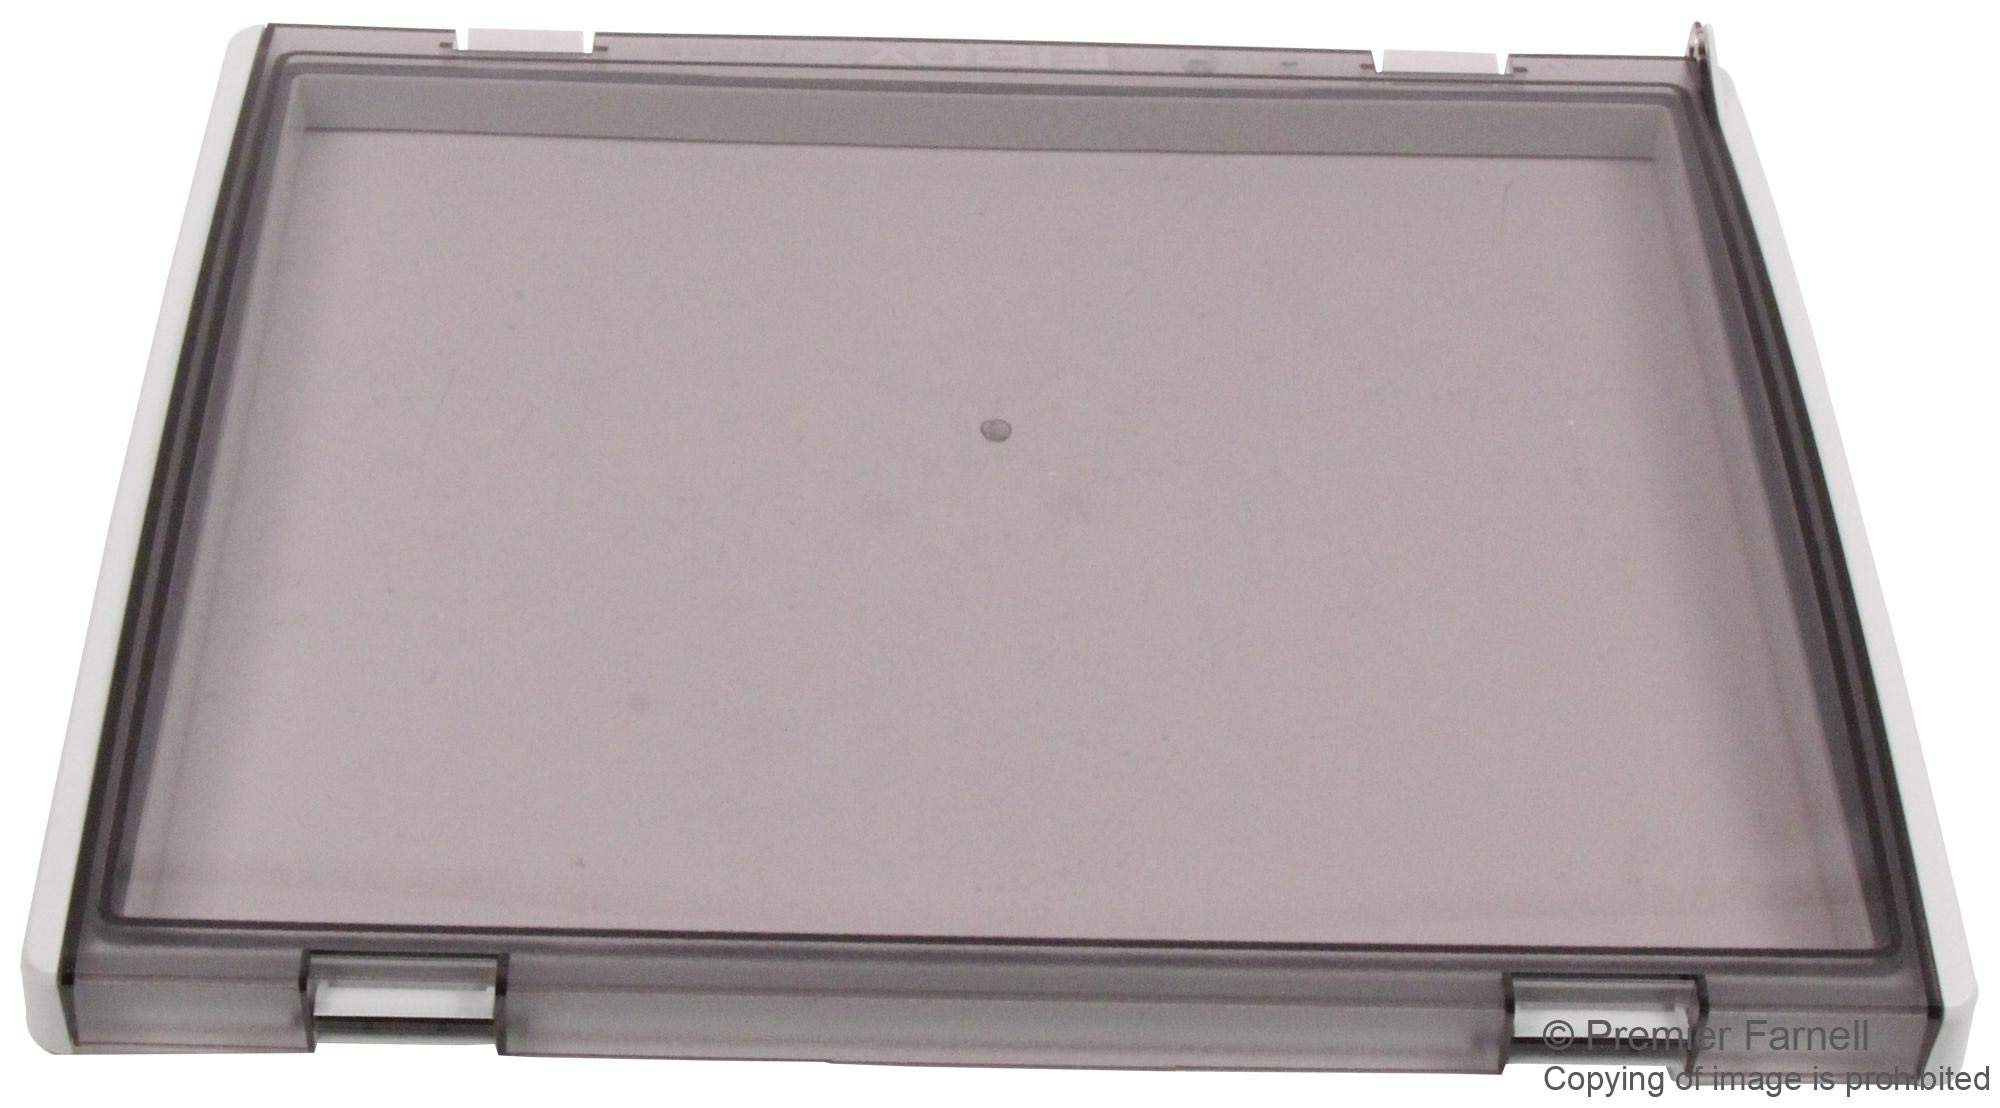 L 43 II - Inspection Window, PC/ABS Cabinets, Polycarbonate, IP65, 1.1 , 13.03 (L 43 II)